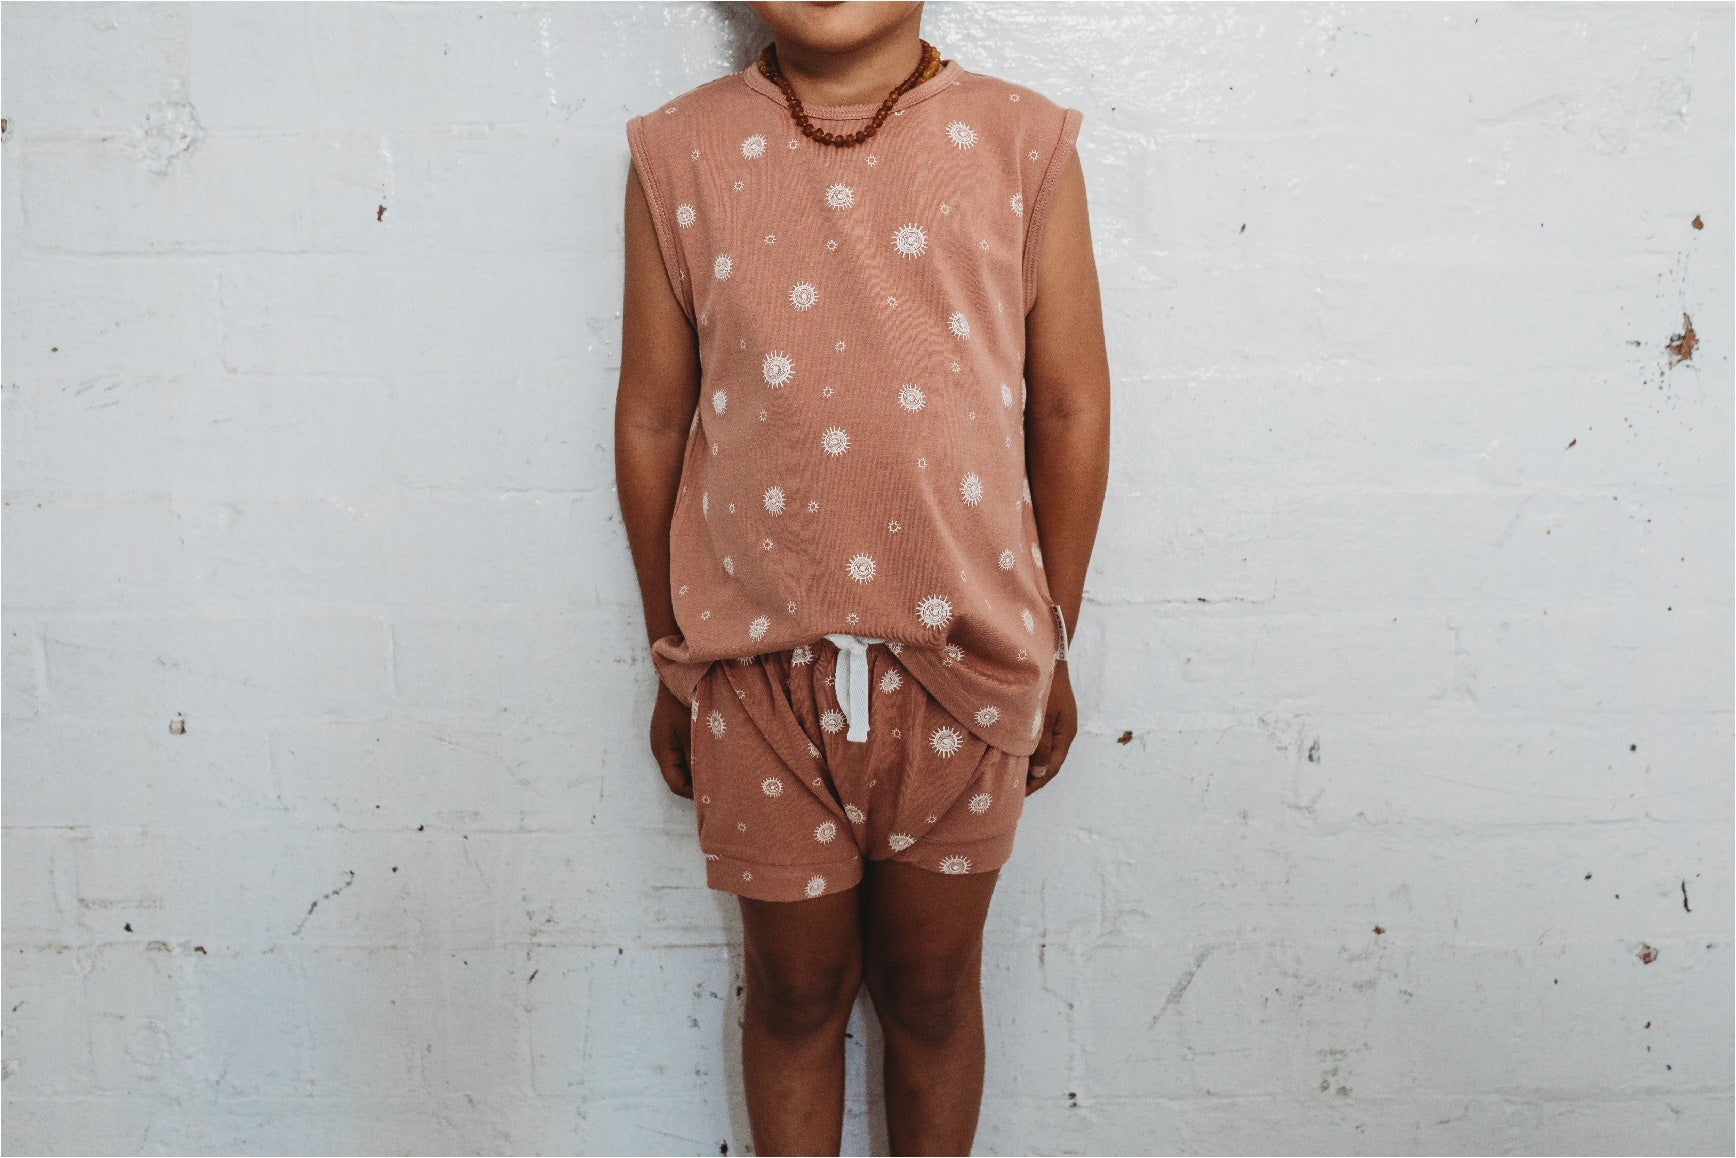 Suns out printed singlet up to 5 years. unisex design, Buttery  soft bamboo and organic cotton blend.